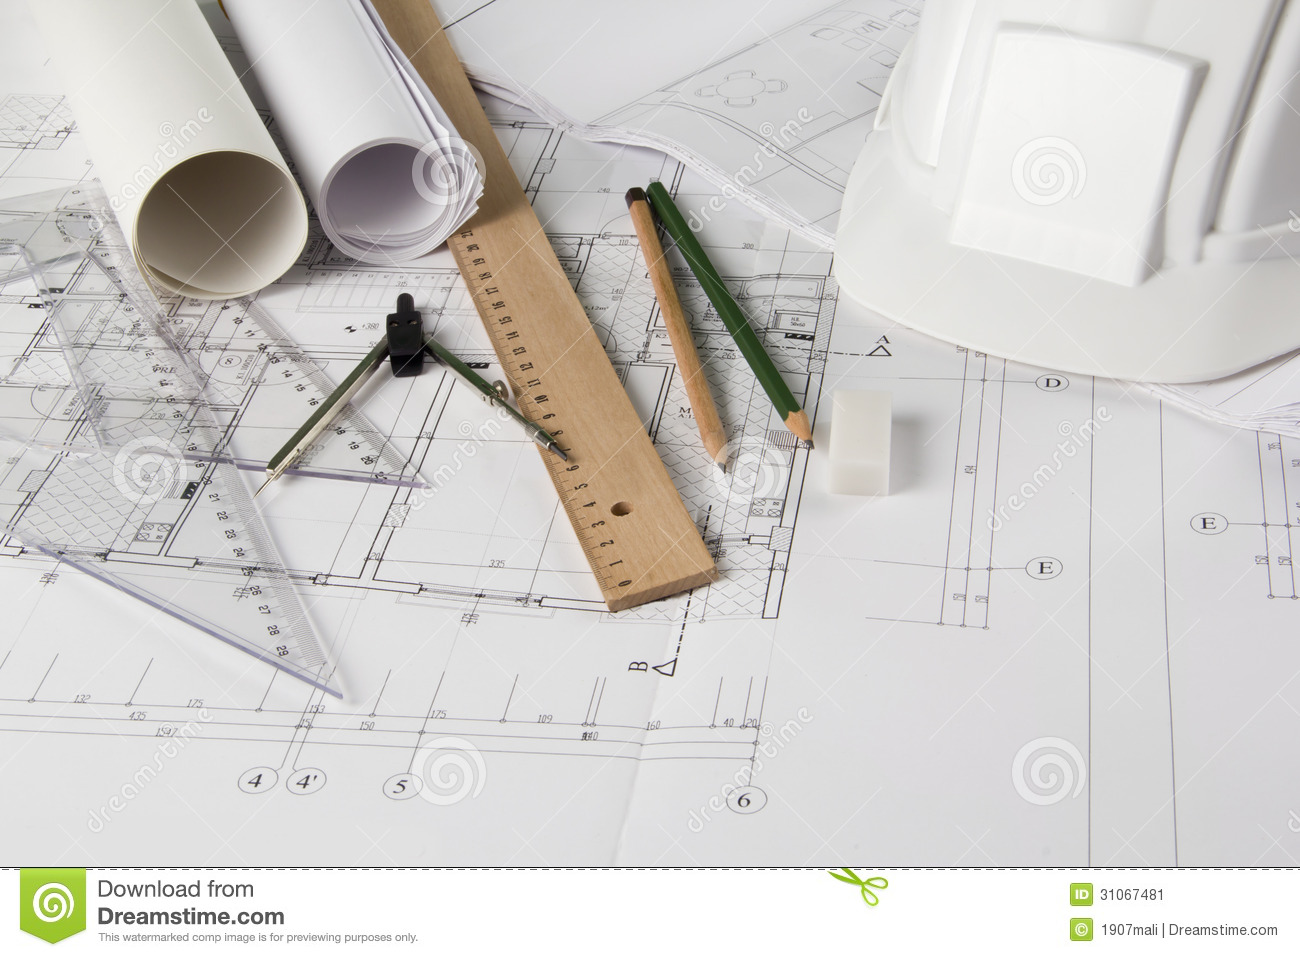 Architectural Blueprints And Drawing Tools Stock Image